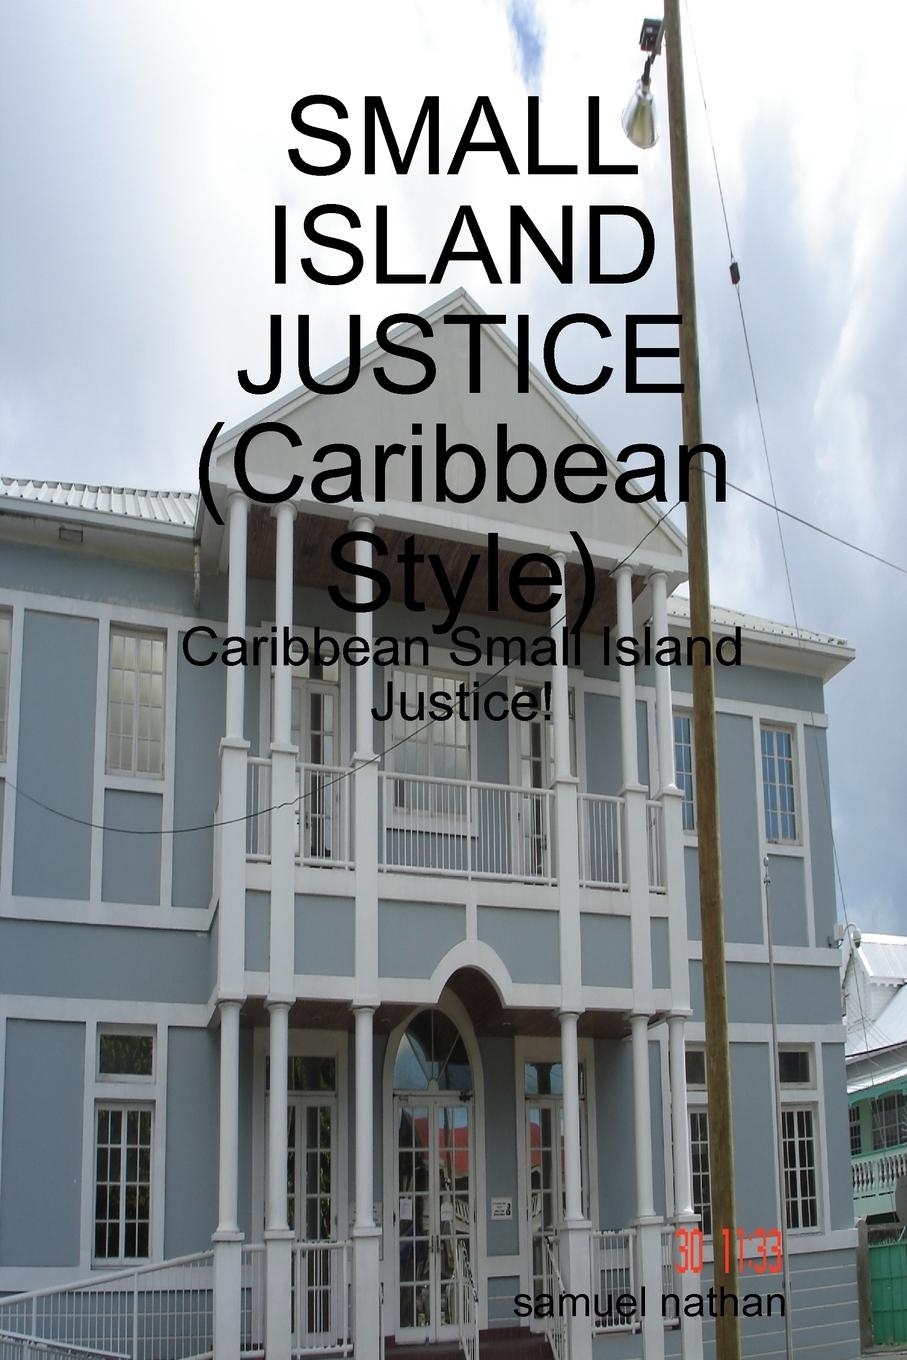 Samuel Nathan Small Island Justice (Caribbean Style) the curse of snake island 1